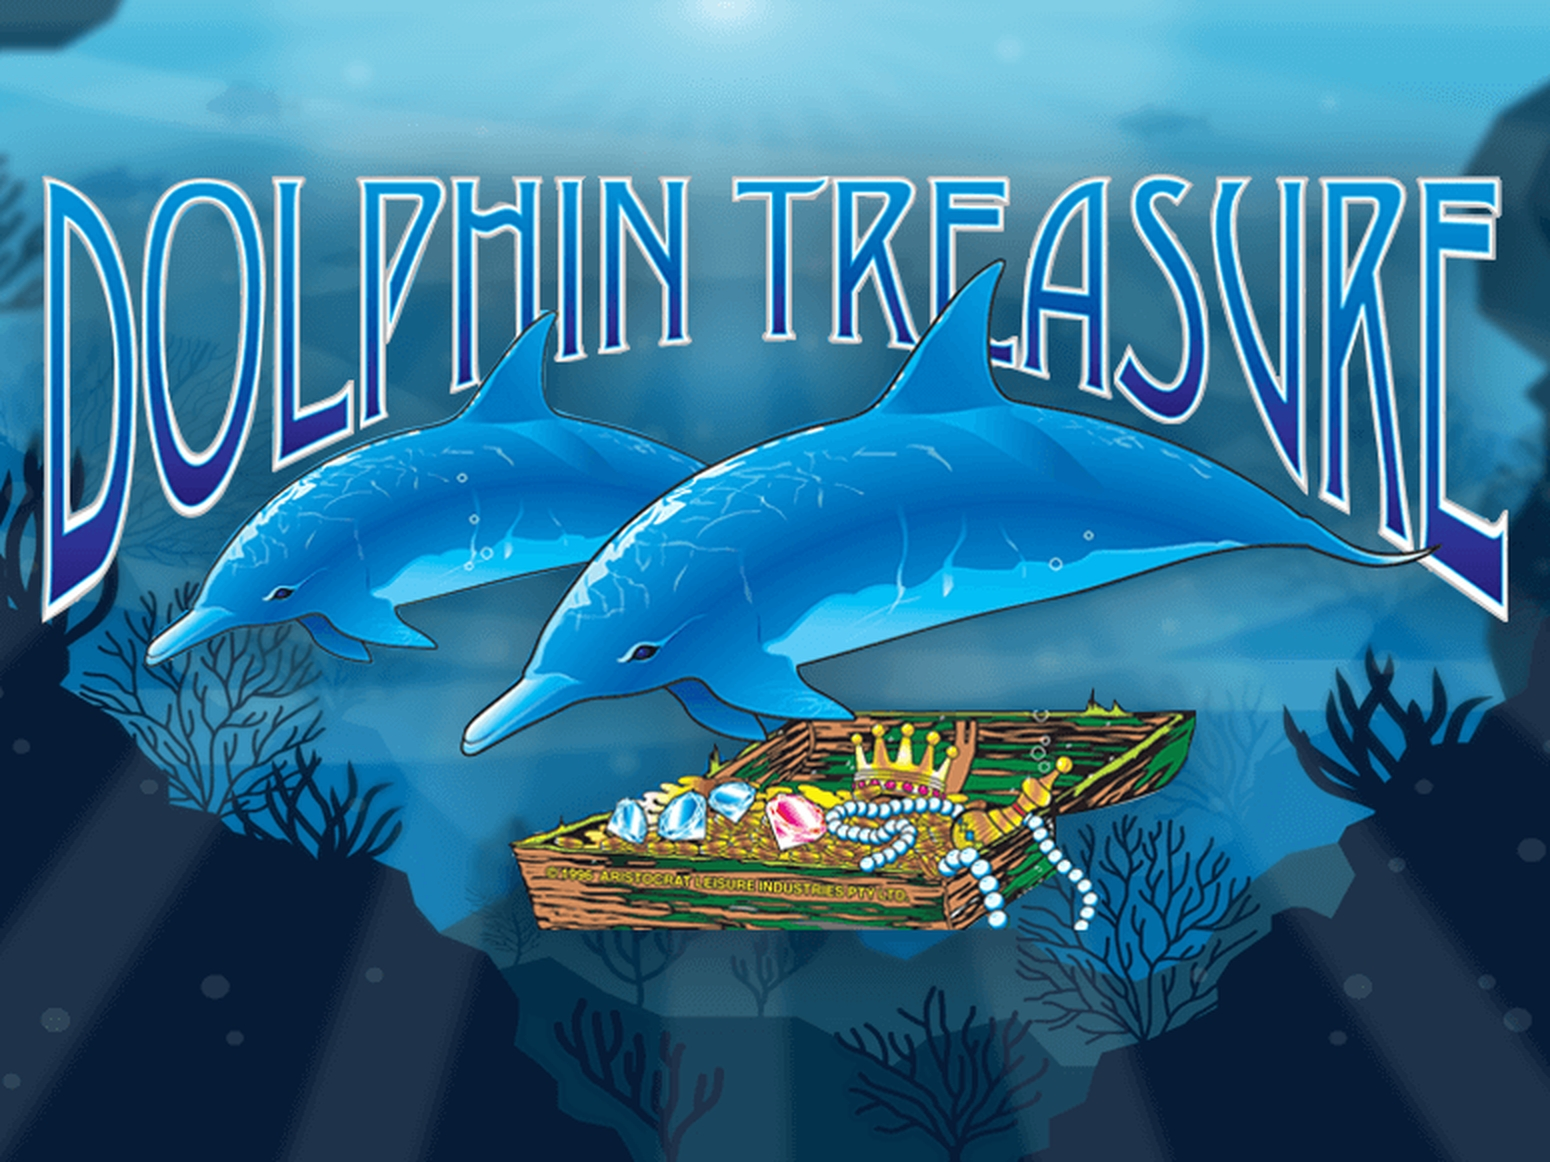 The Dolphin Treasure Online Slot Demo Game by Aristocrat